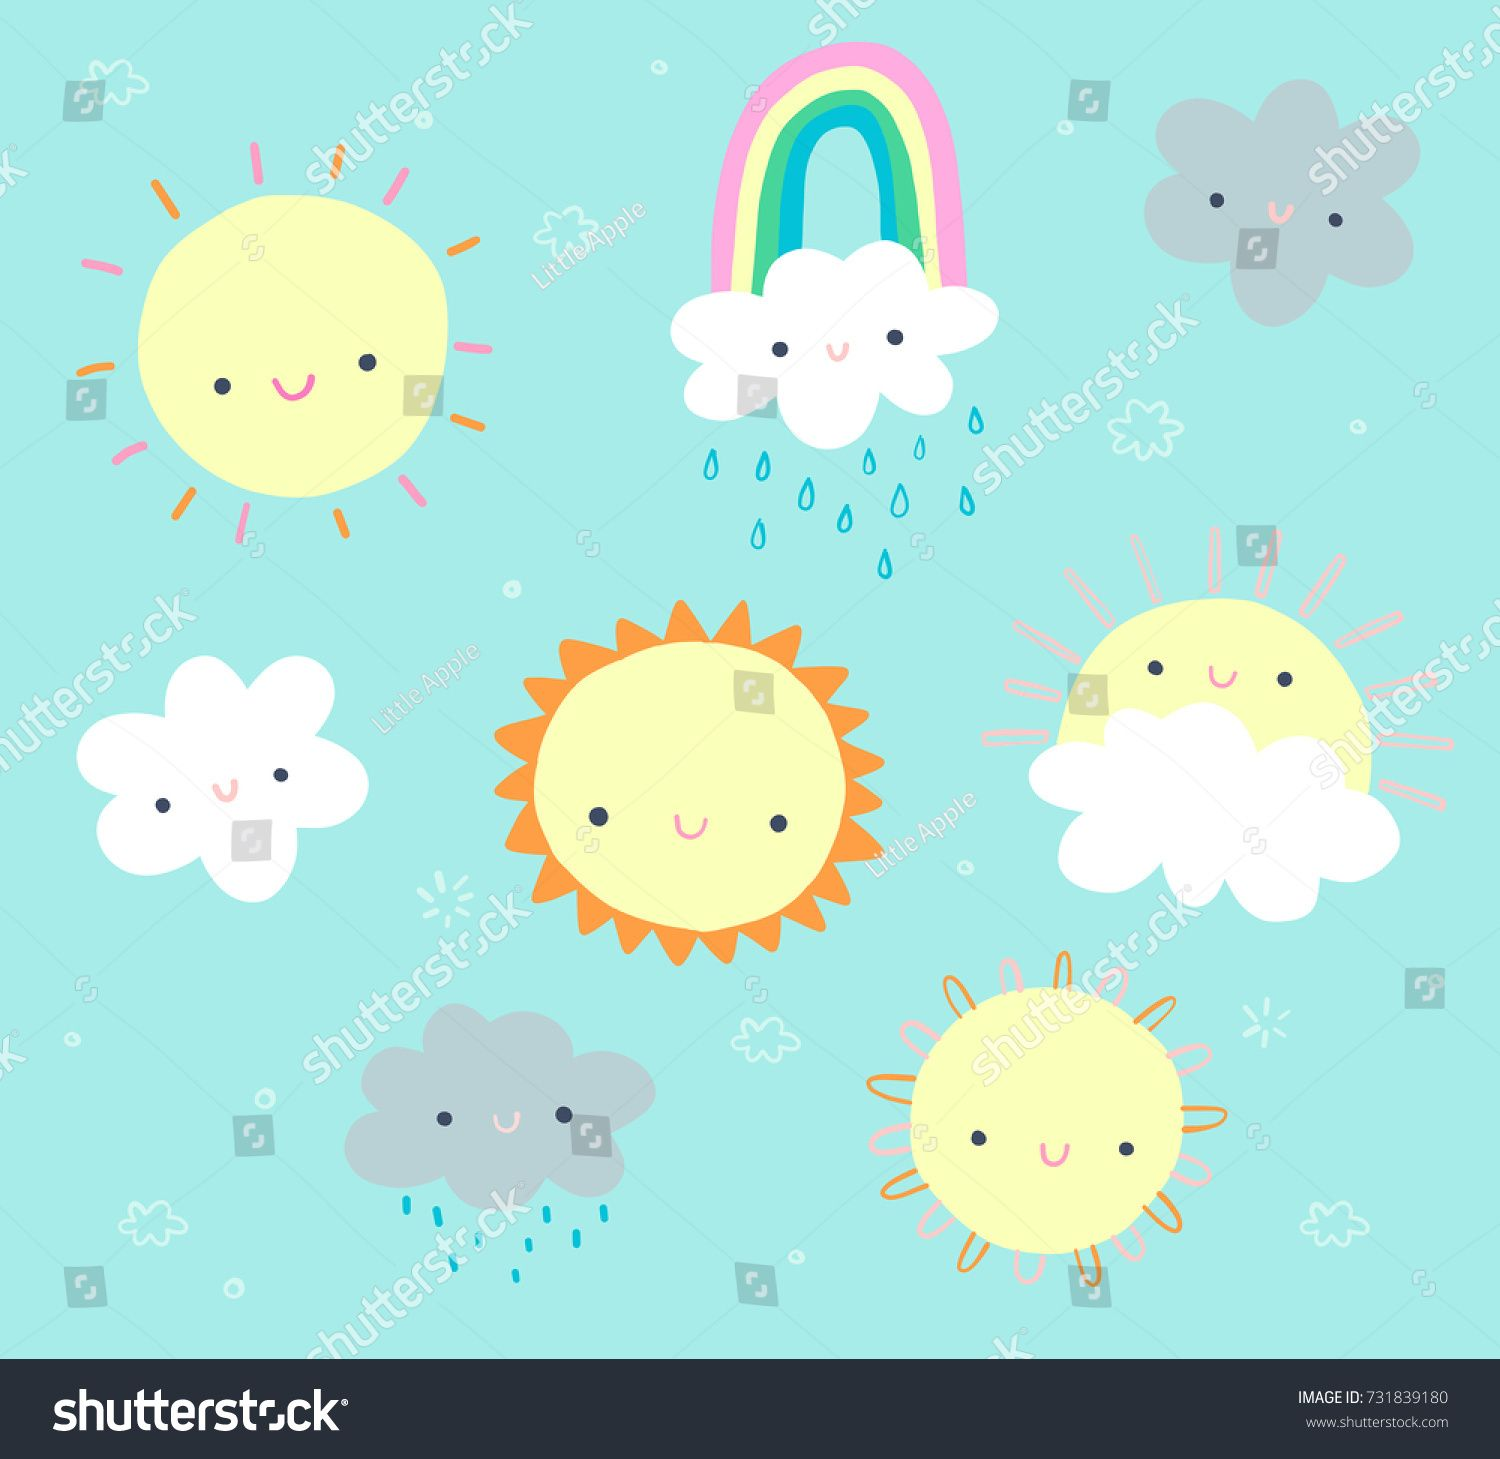 Cute Daytime Clip Art Set With Sun Clouds And A Rainbow Ad Spon Clip Art Cute Daytime Clip Art Art Set Art